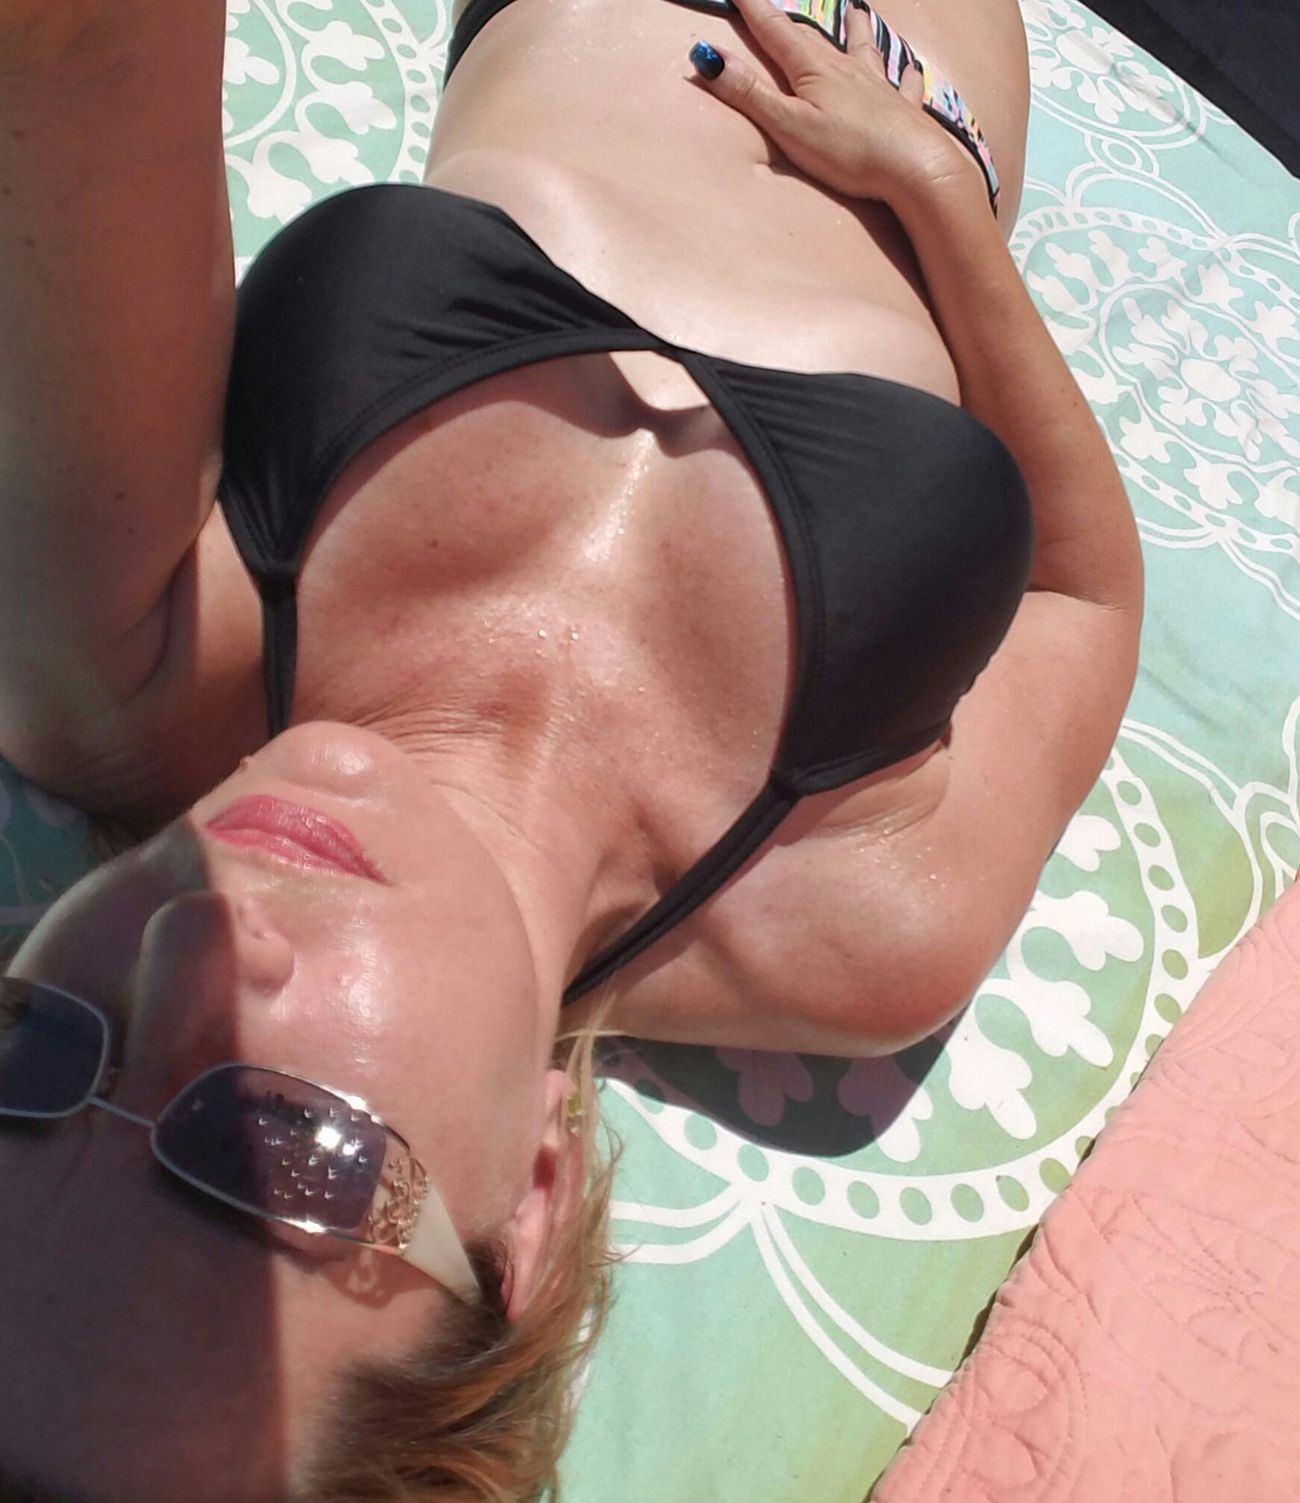 Noedit Hello World Relaxing For My Friends That Connect Enjoying Life Thatsright Thingsthatmakemesmile THESuNiSSHiNiNG Naturelovers Summer ☀ Older Woman Enjoying Life Thatsallineed Eating Healthy Lifeisbeautiful Pooltime Take A Break Upfromthesky